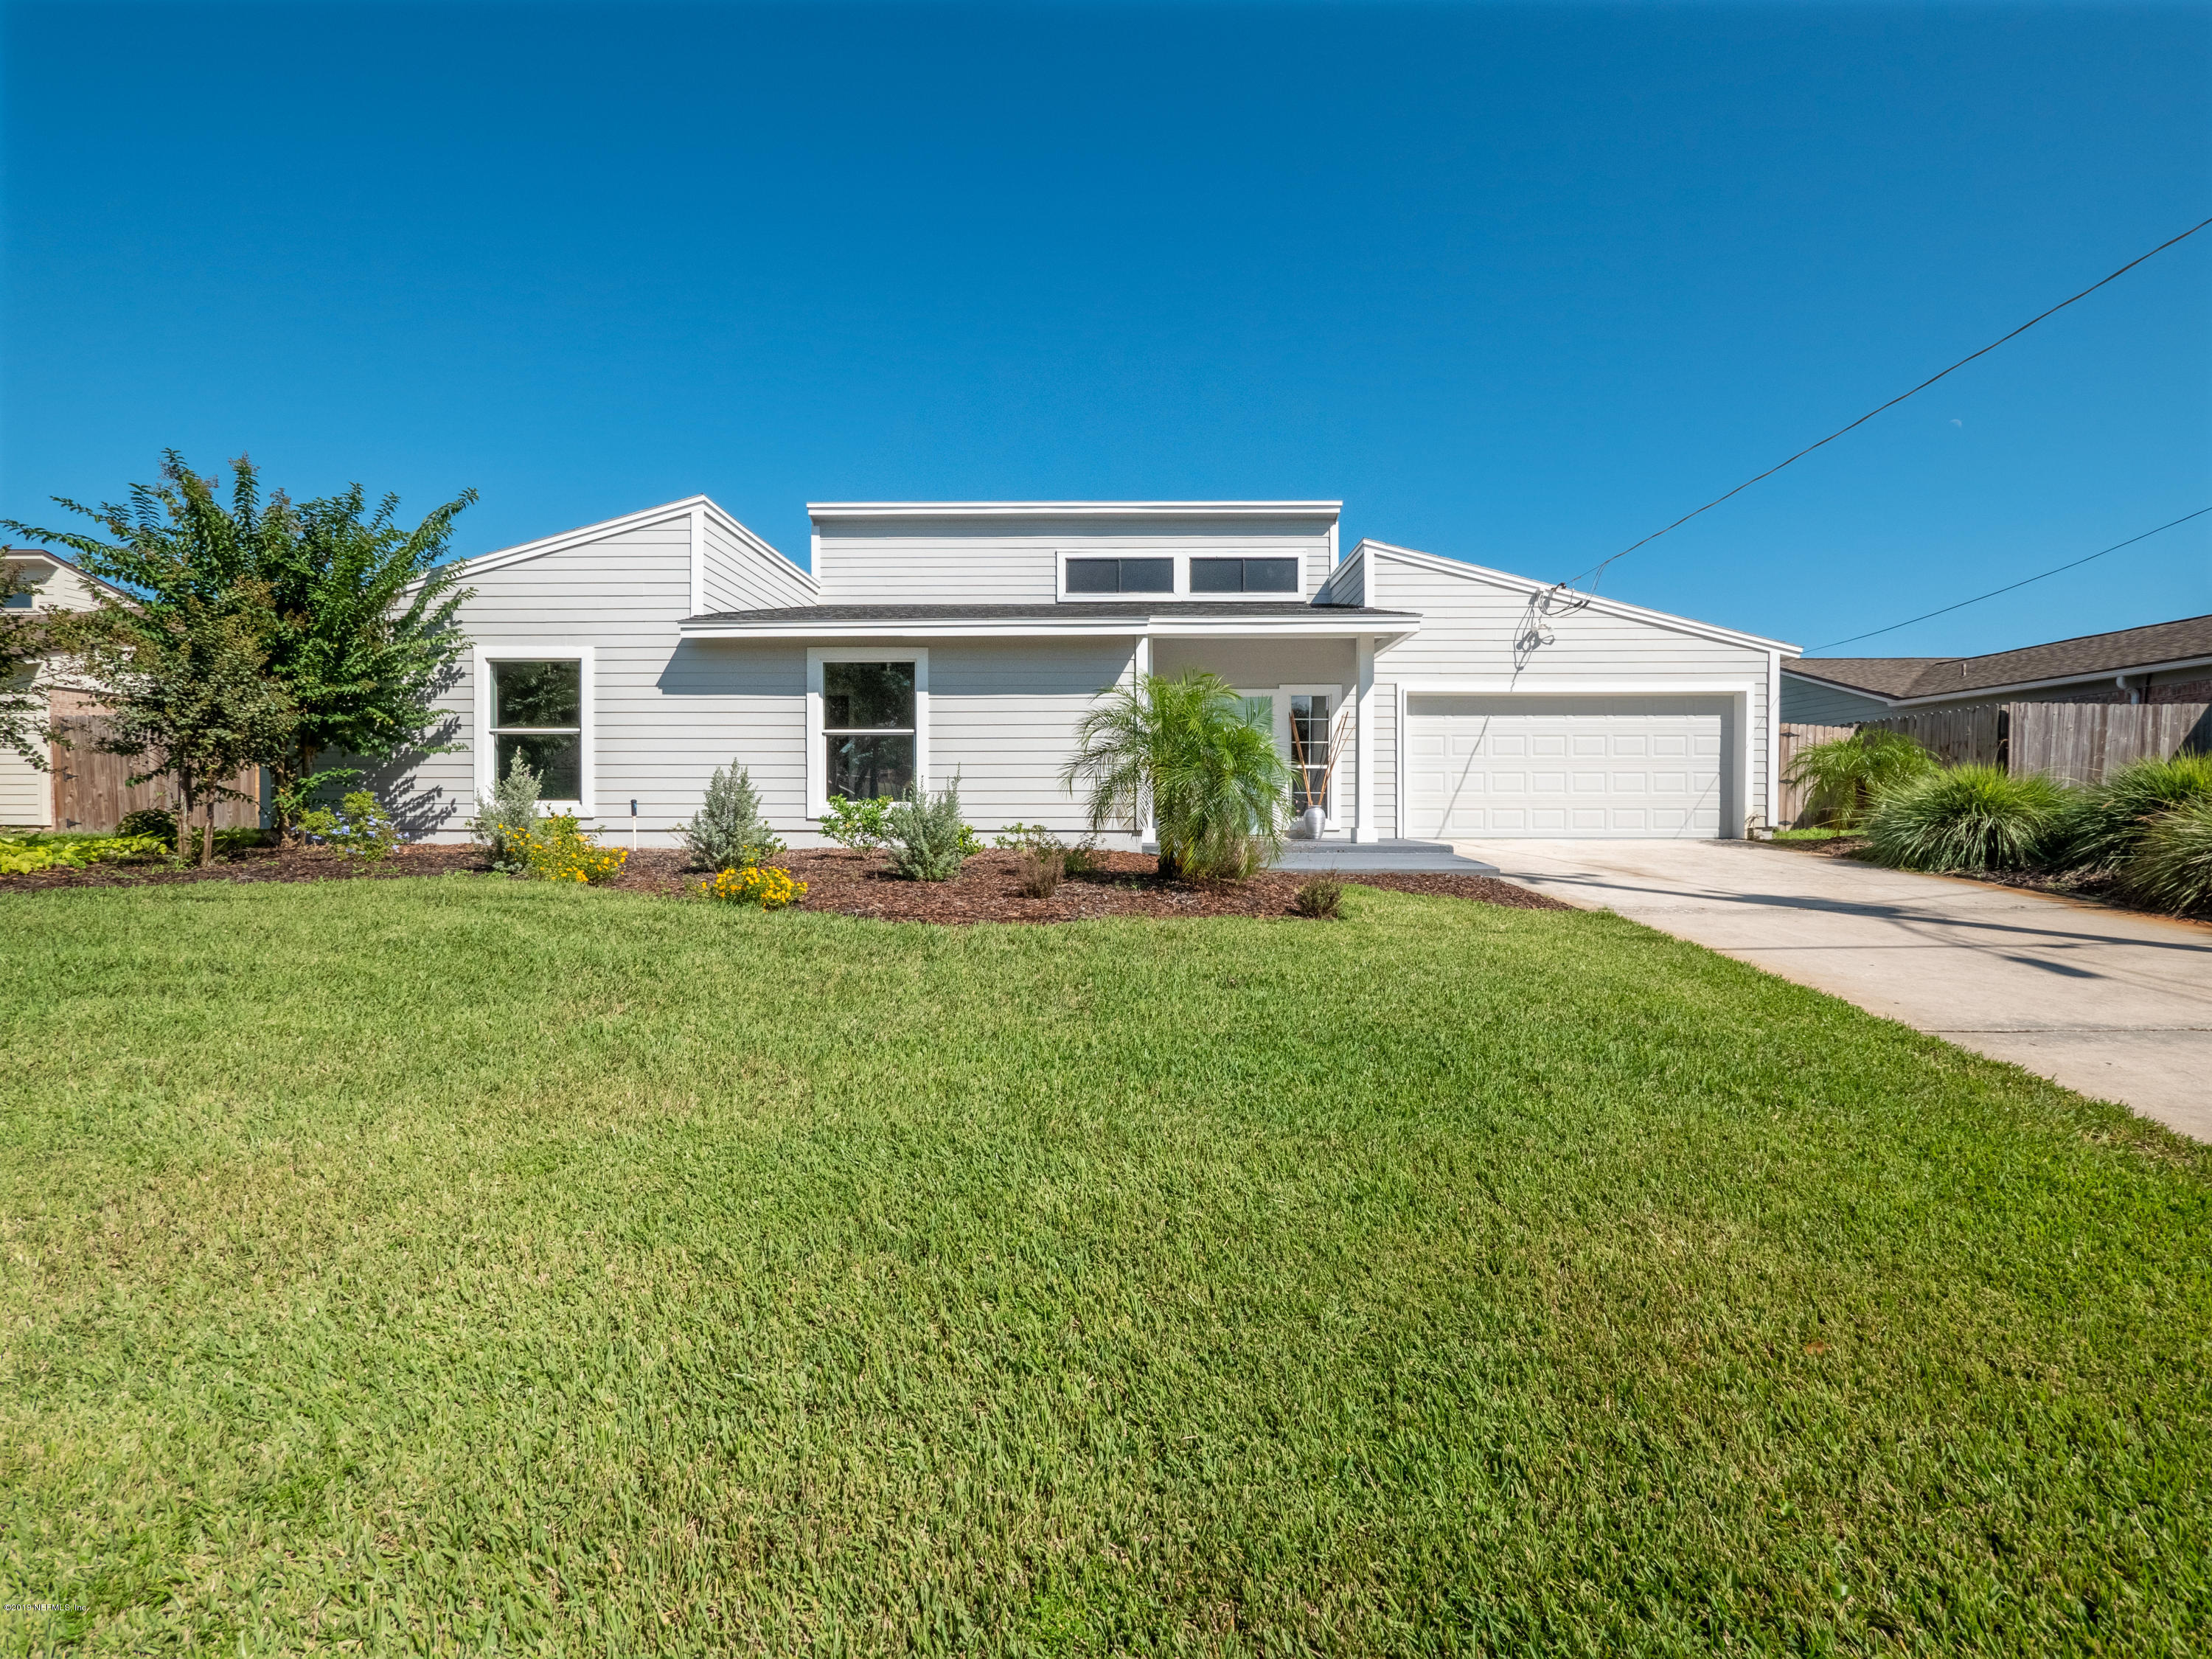 4139 TIDEVIEW, JACKSONVILLE, FLORIDA 32250, 3 Bedrooms Bedrooms, ,2 BathroomsBathrooms,Residential - single family,For sale,TIDEVIEW,1000908